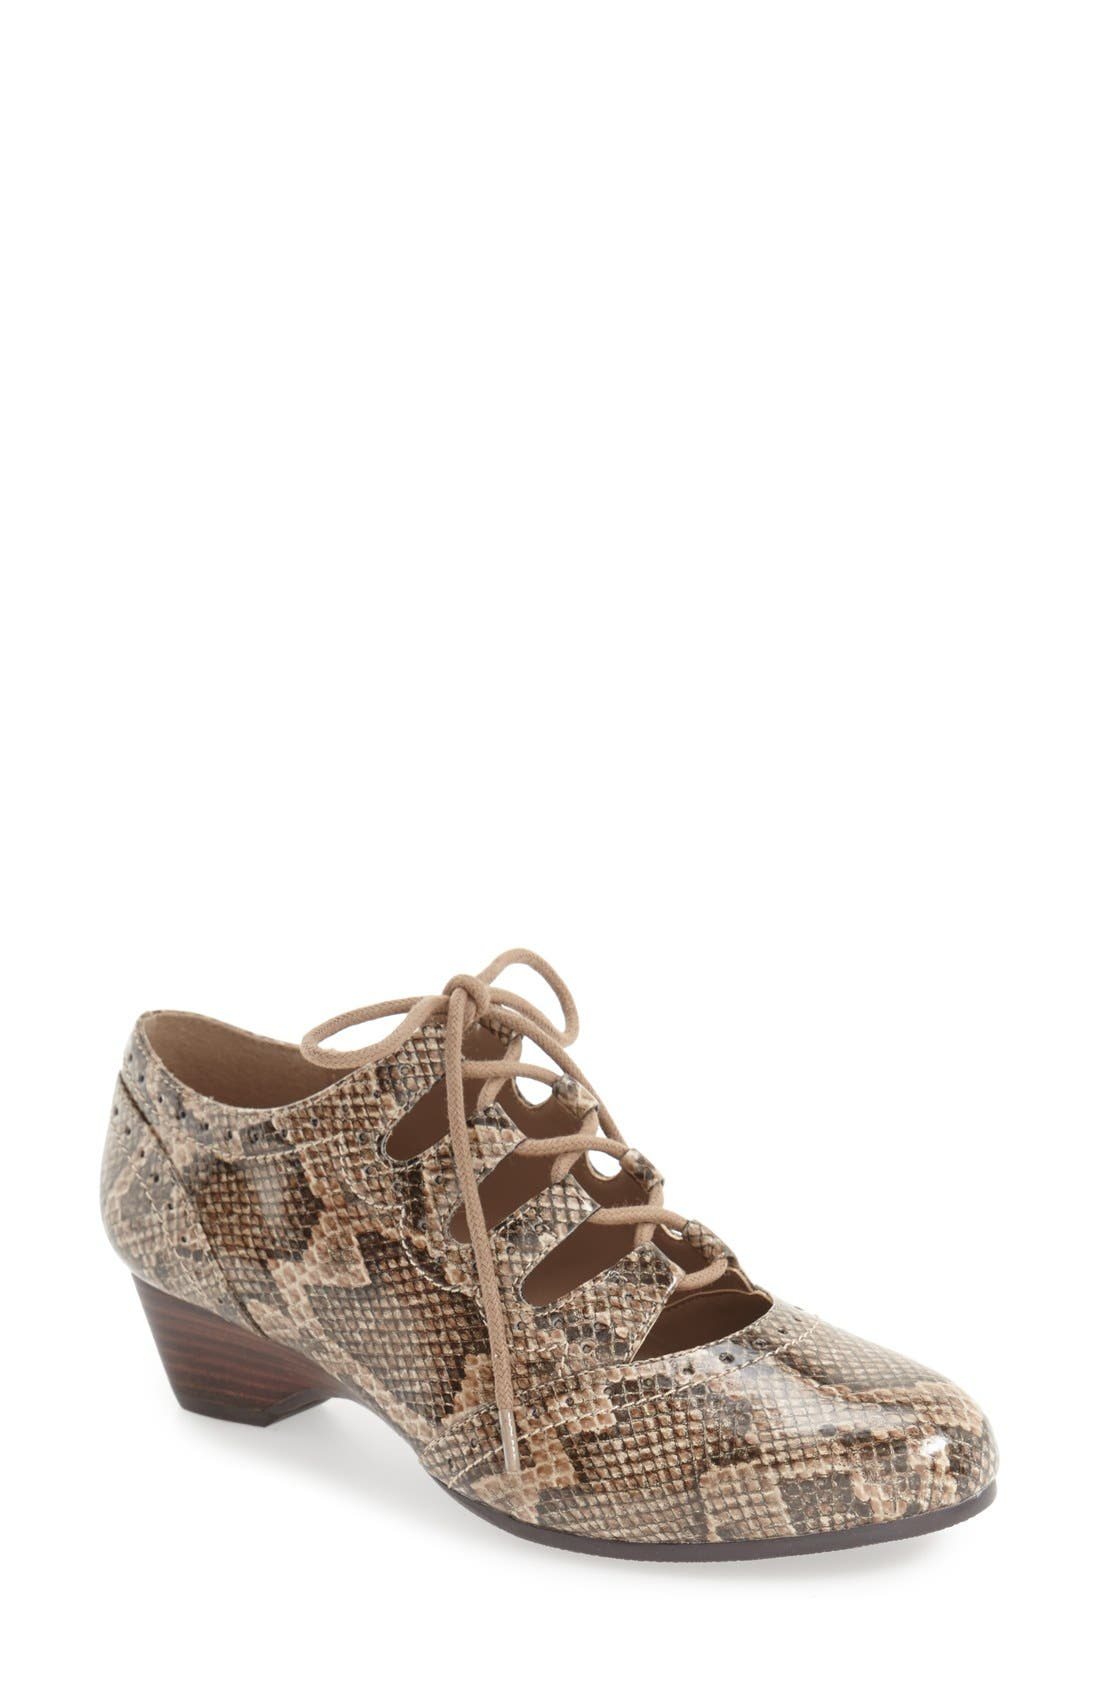 Main Image - Bella Vita Posie Ghillie Oxford (Women)